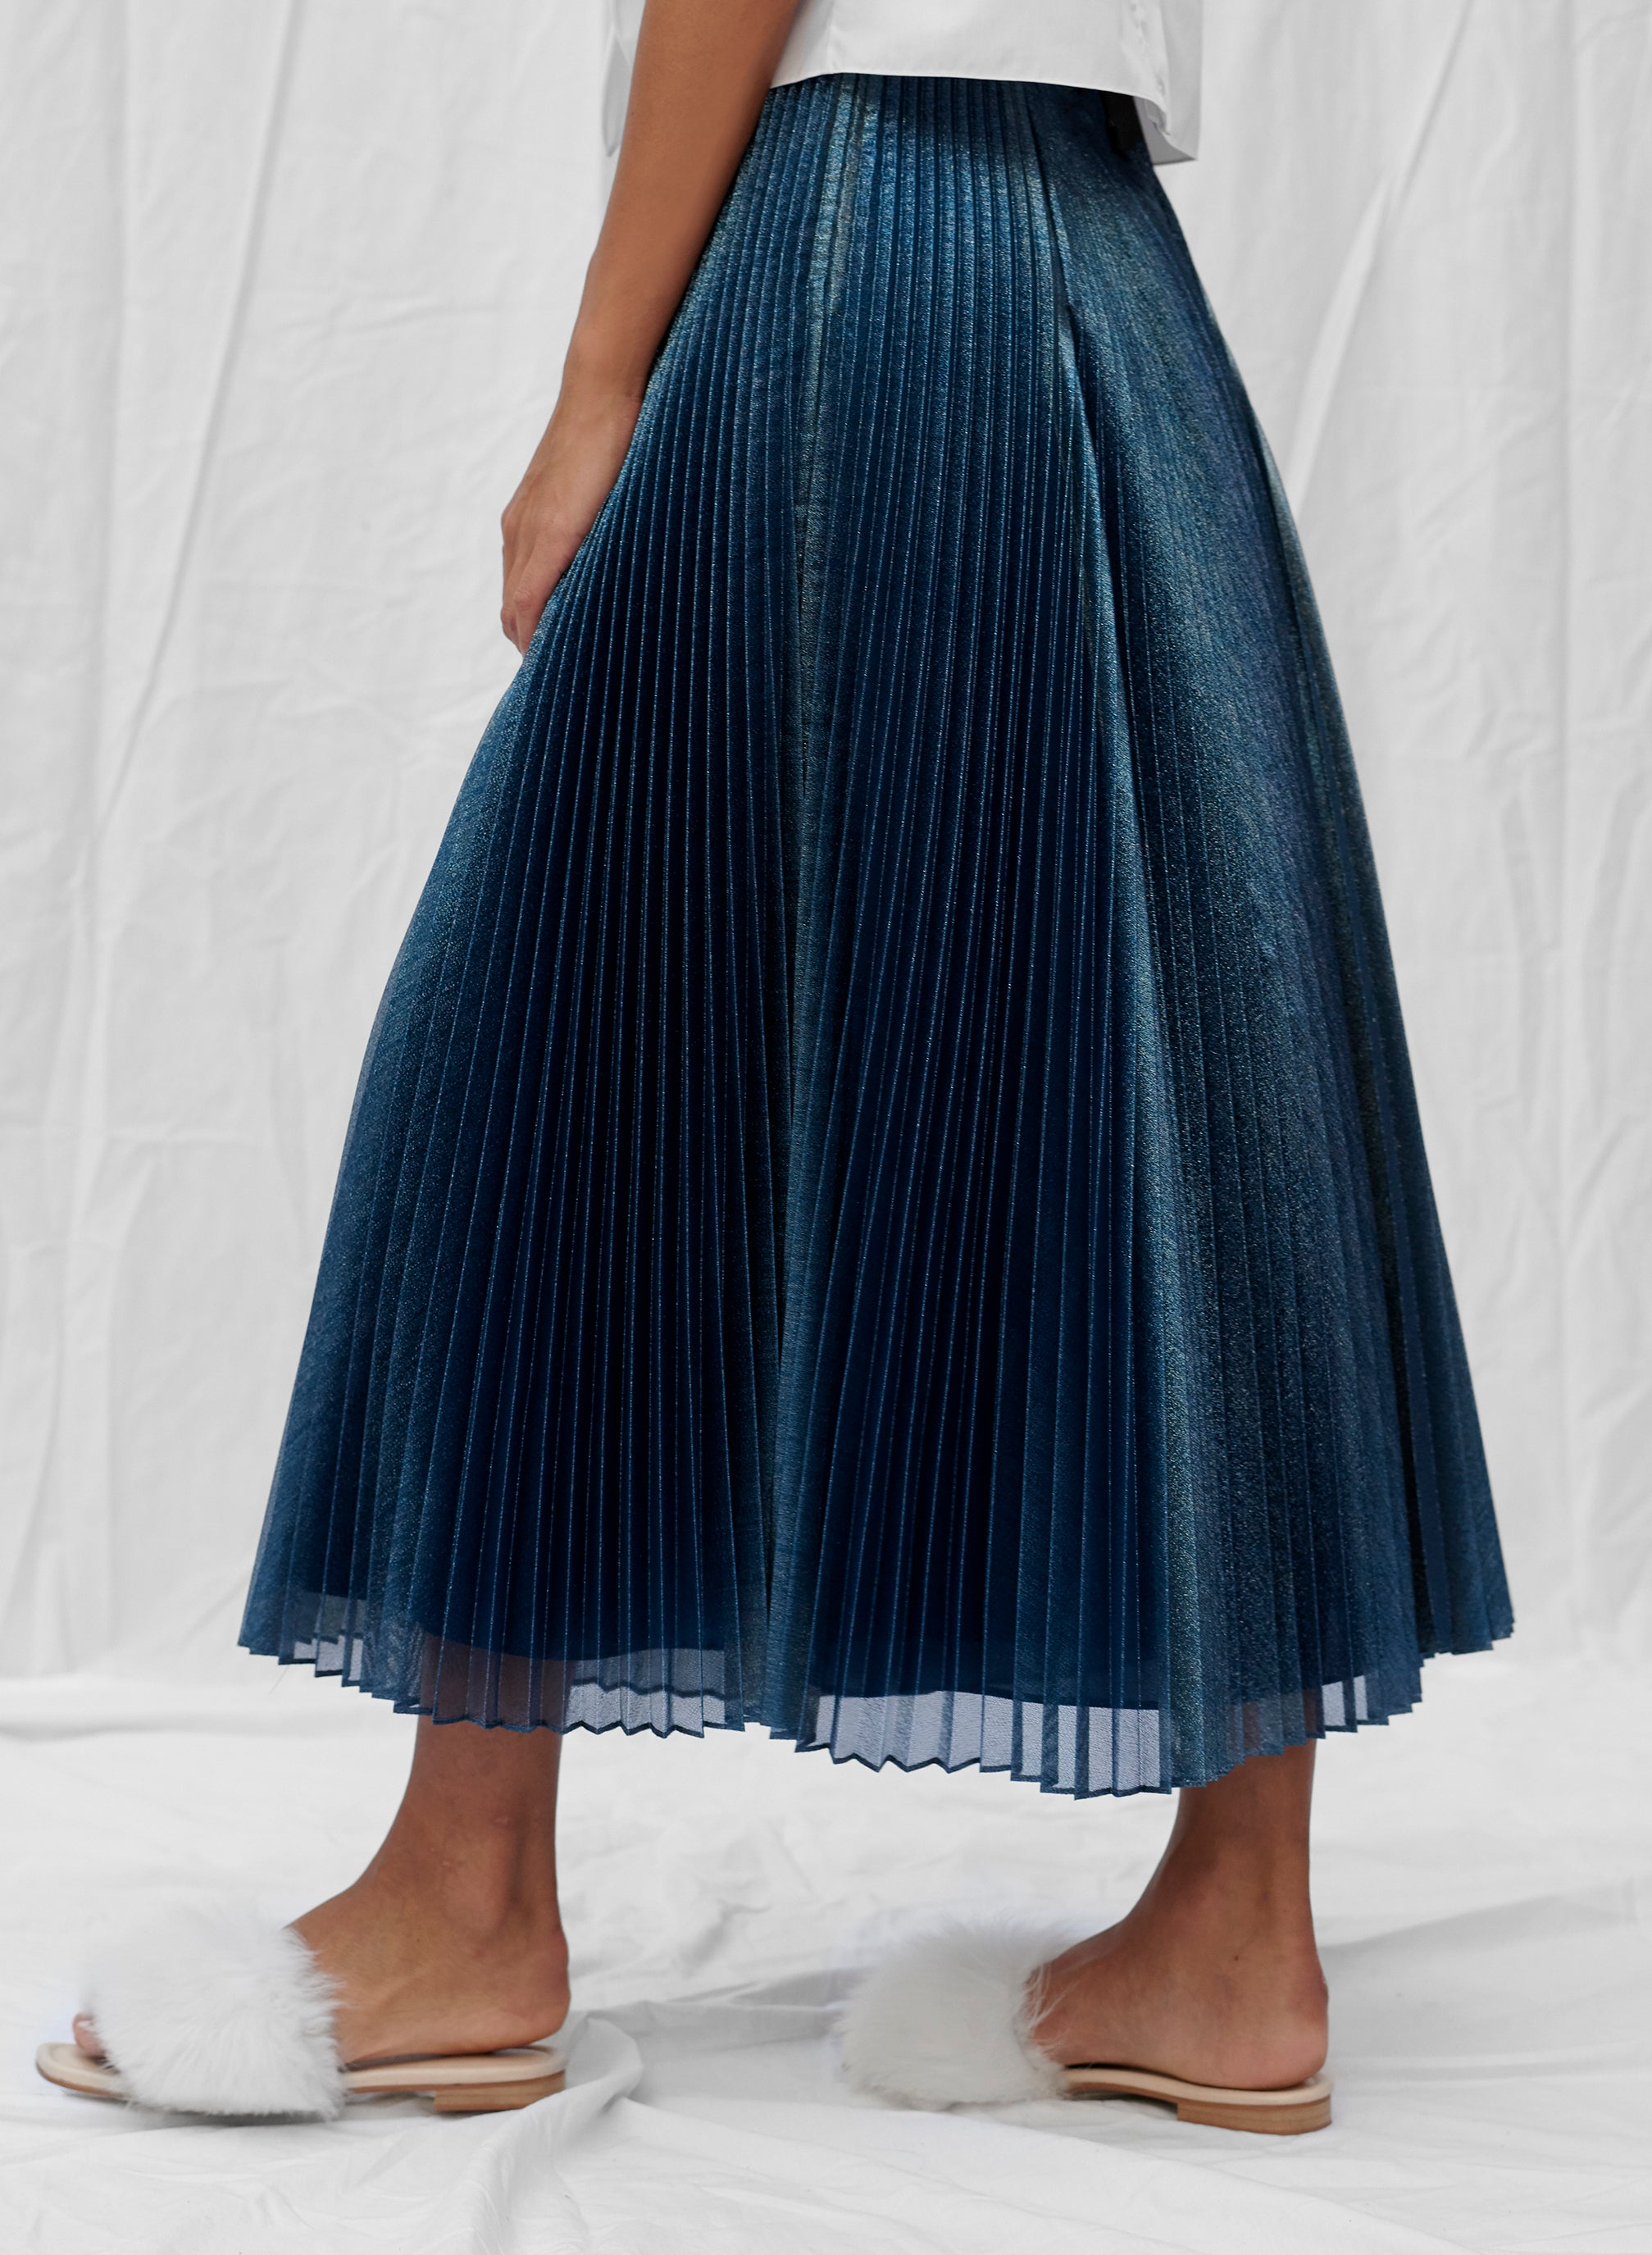 claudia li fall winter 2019 holiday pleated skirt in blue translucent metallic silk lurex voile